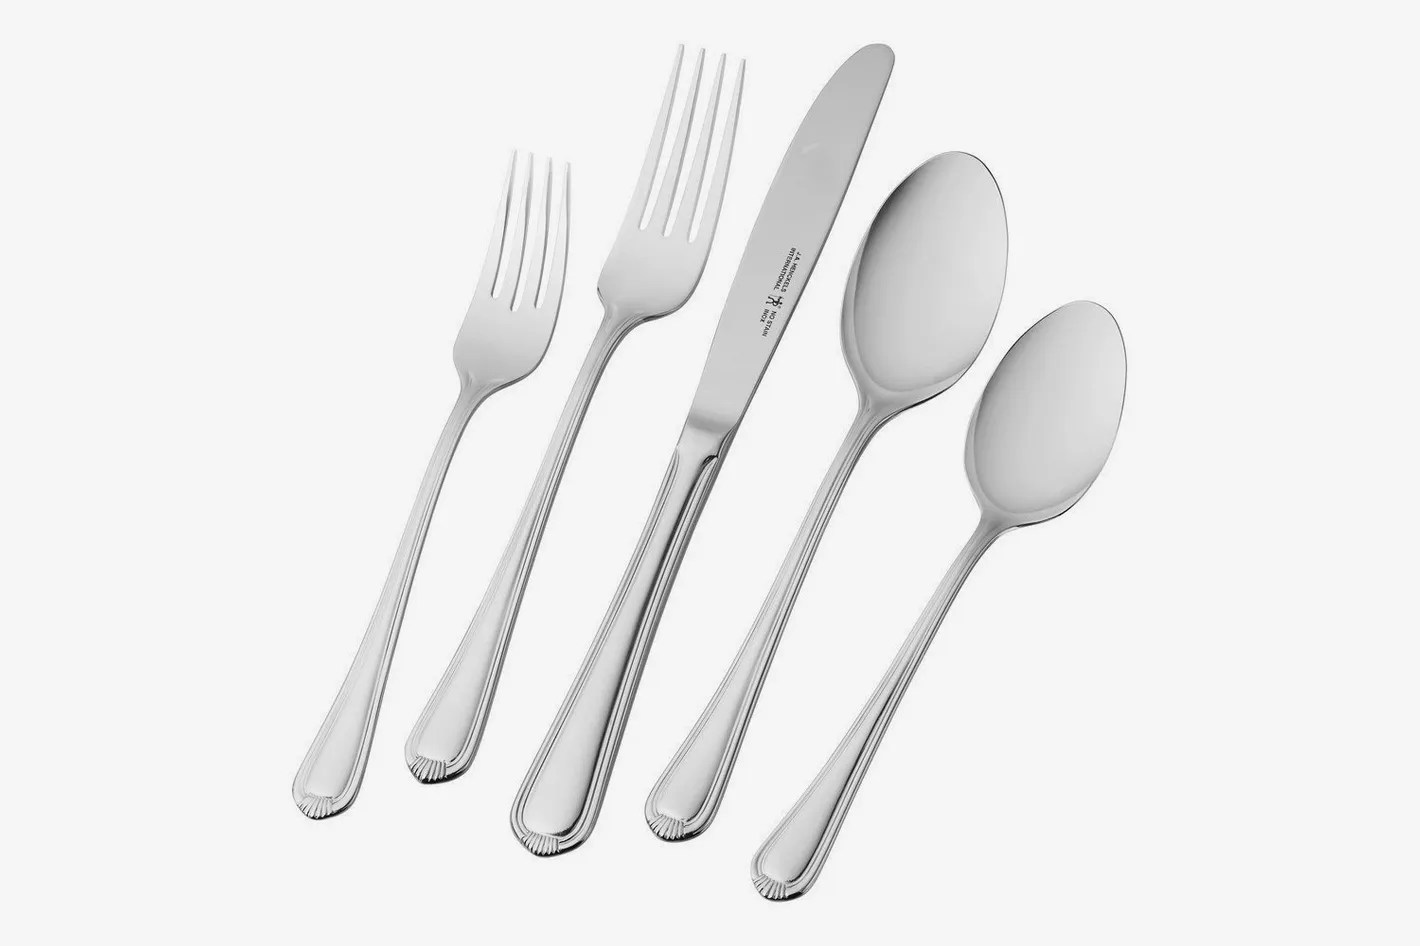 Used Flatware For Sale J A Henckels International 65 Piece Alcea Flatware Set